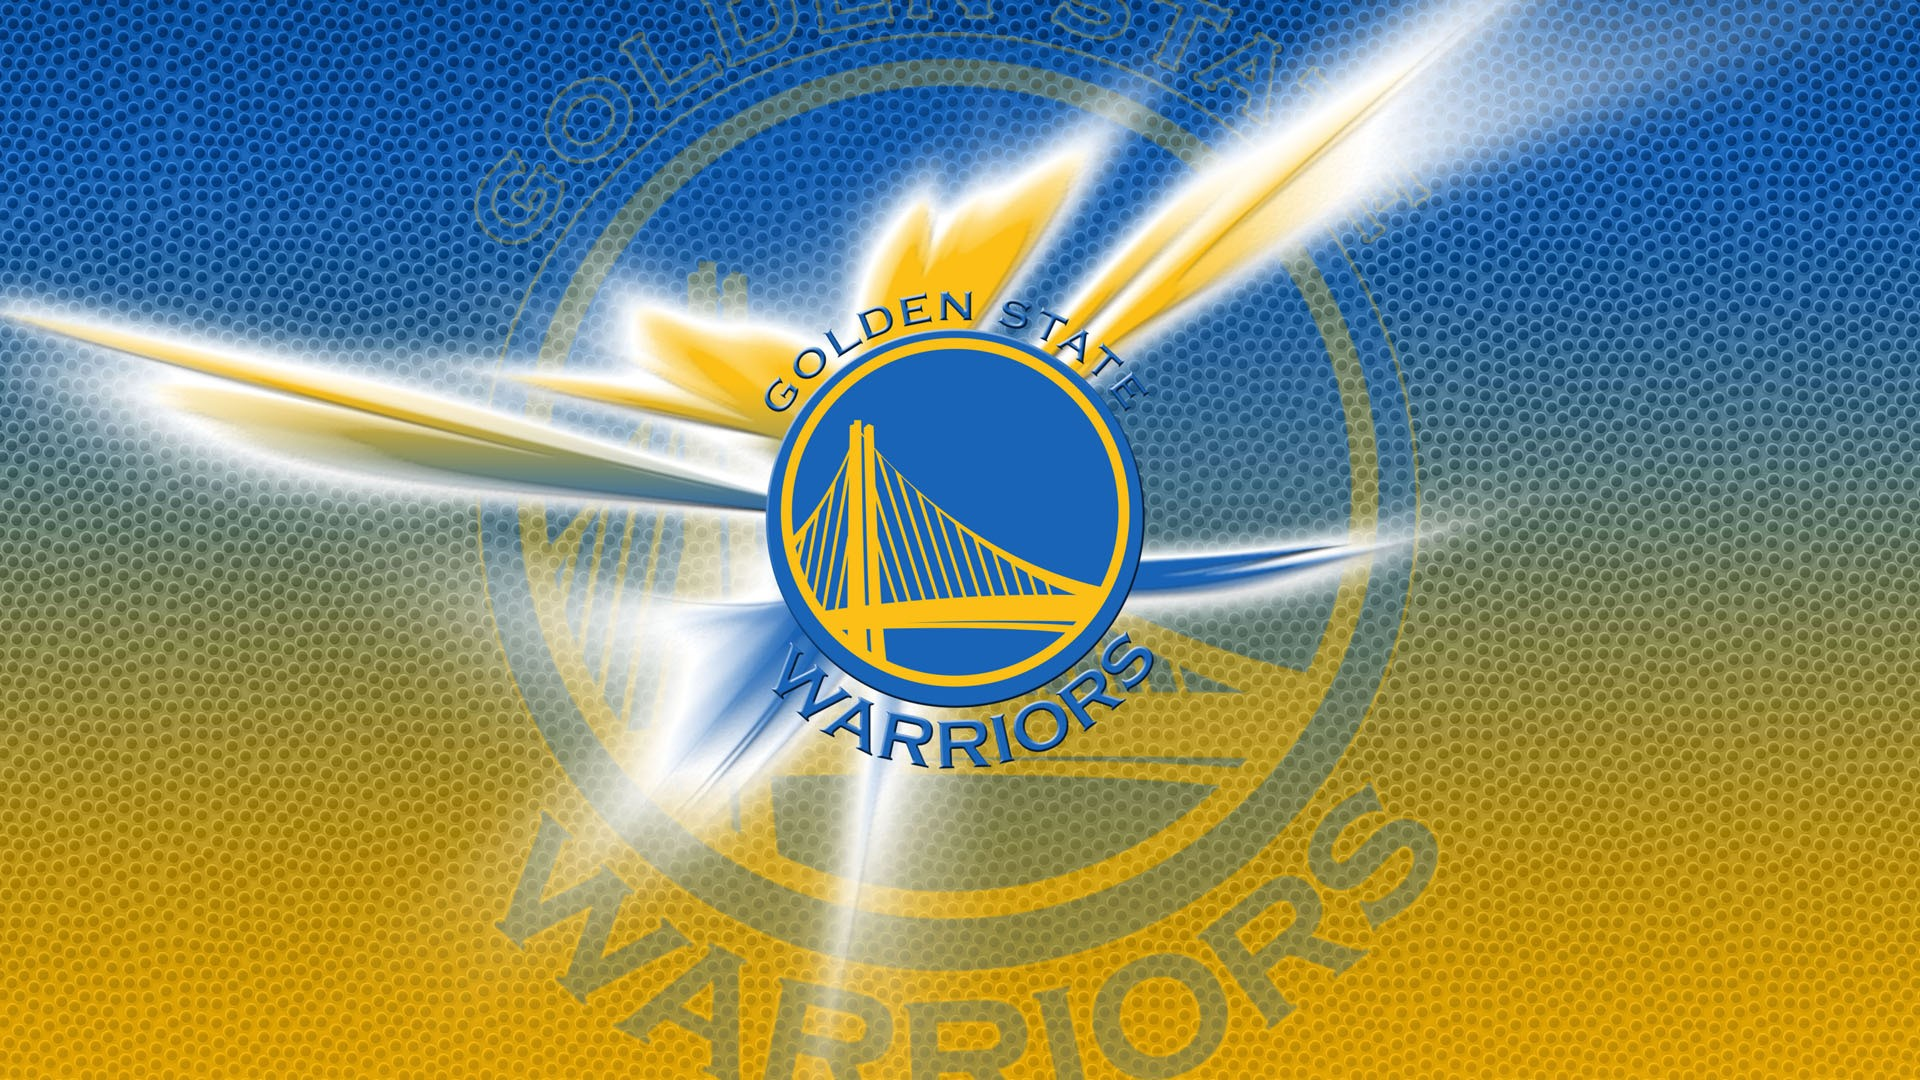 Golden State Warriors Background images